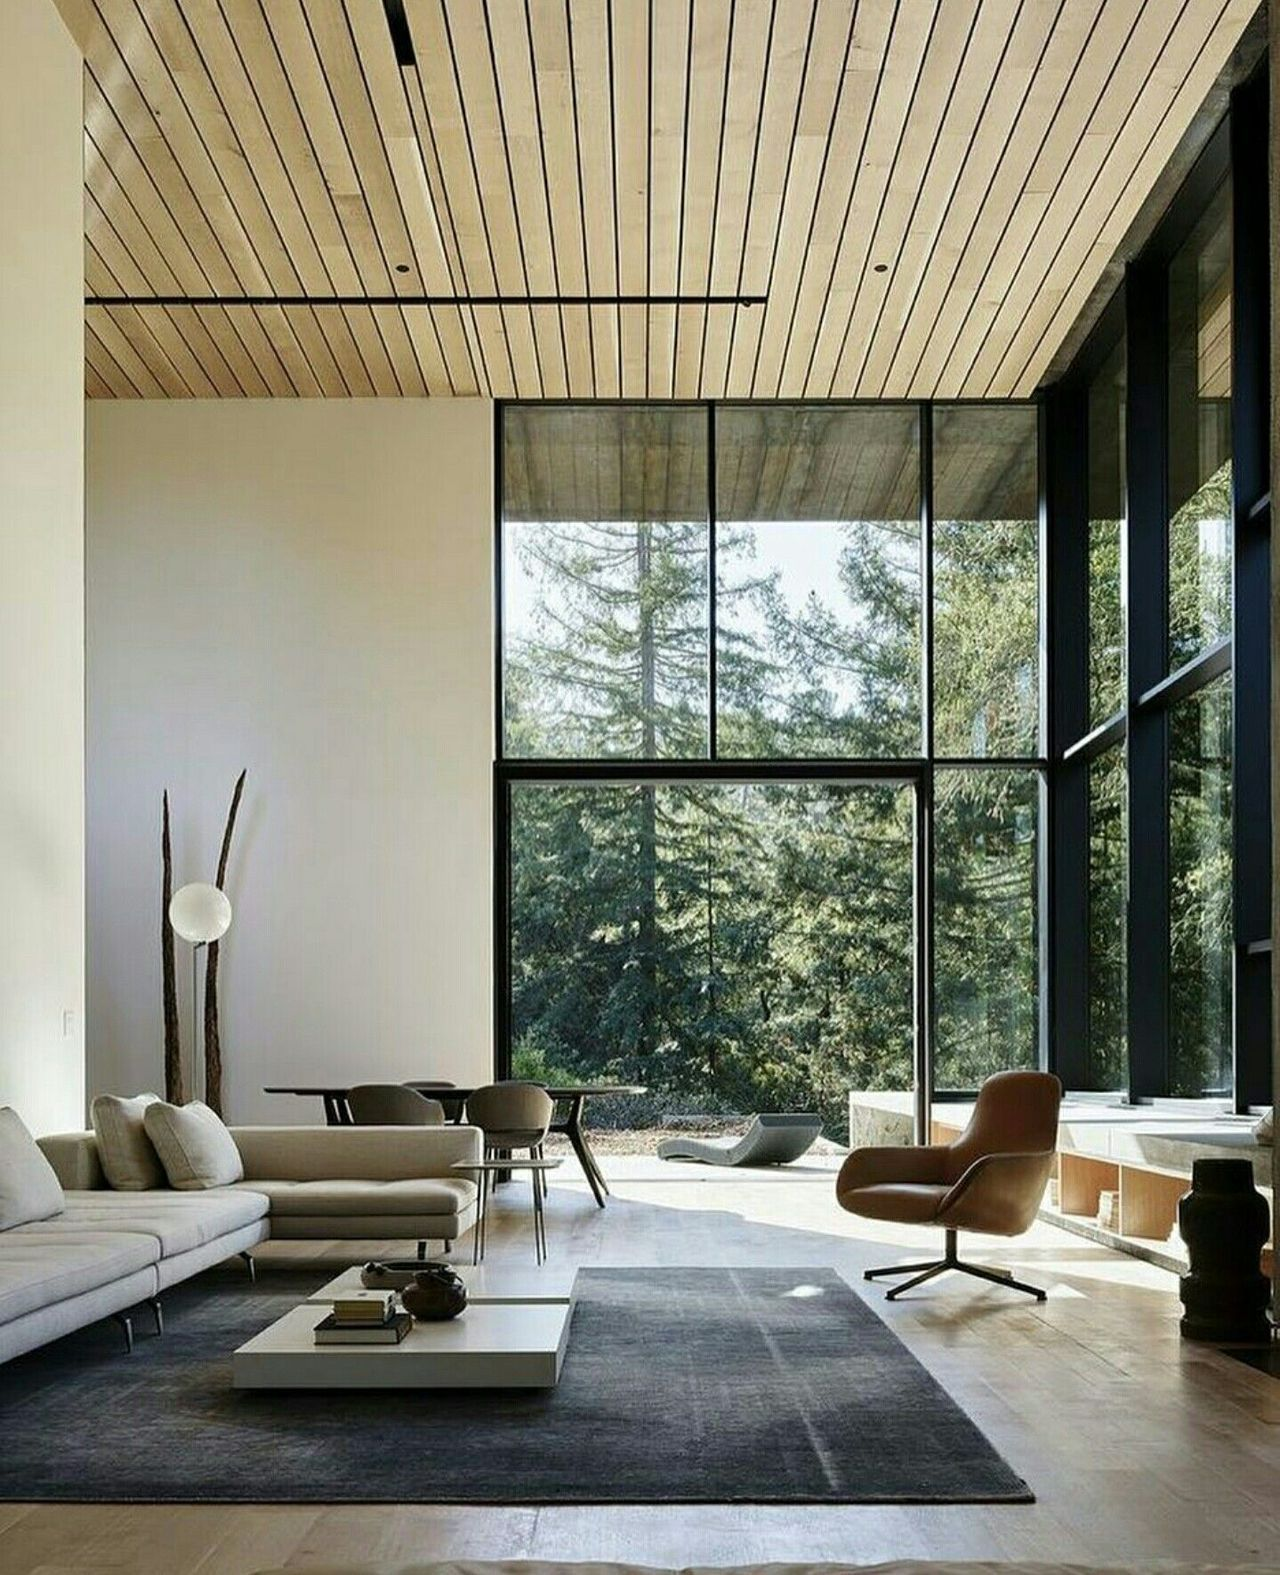 Architecte D'intérieur Usa Home Interior Design Beautiful Room With Spacy Windows In Orinda